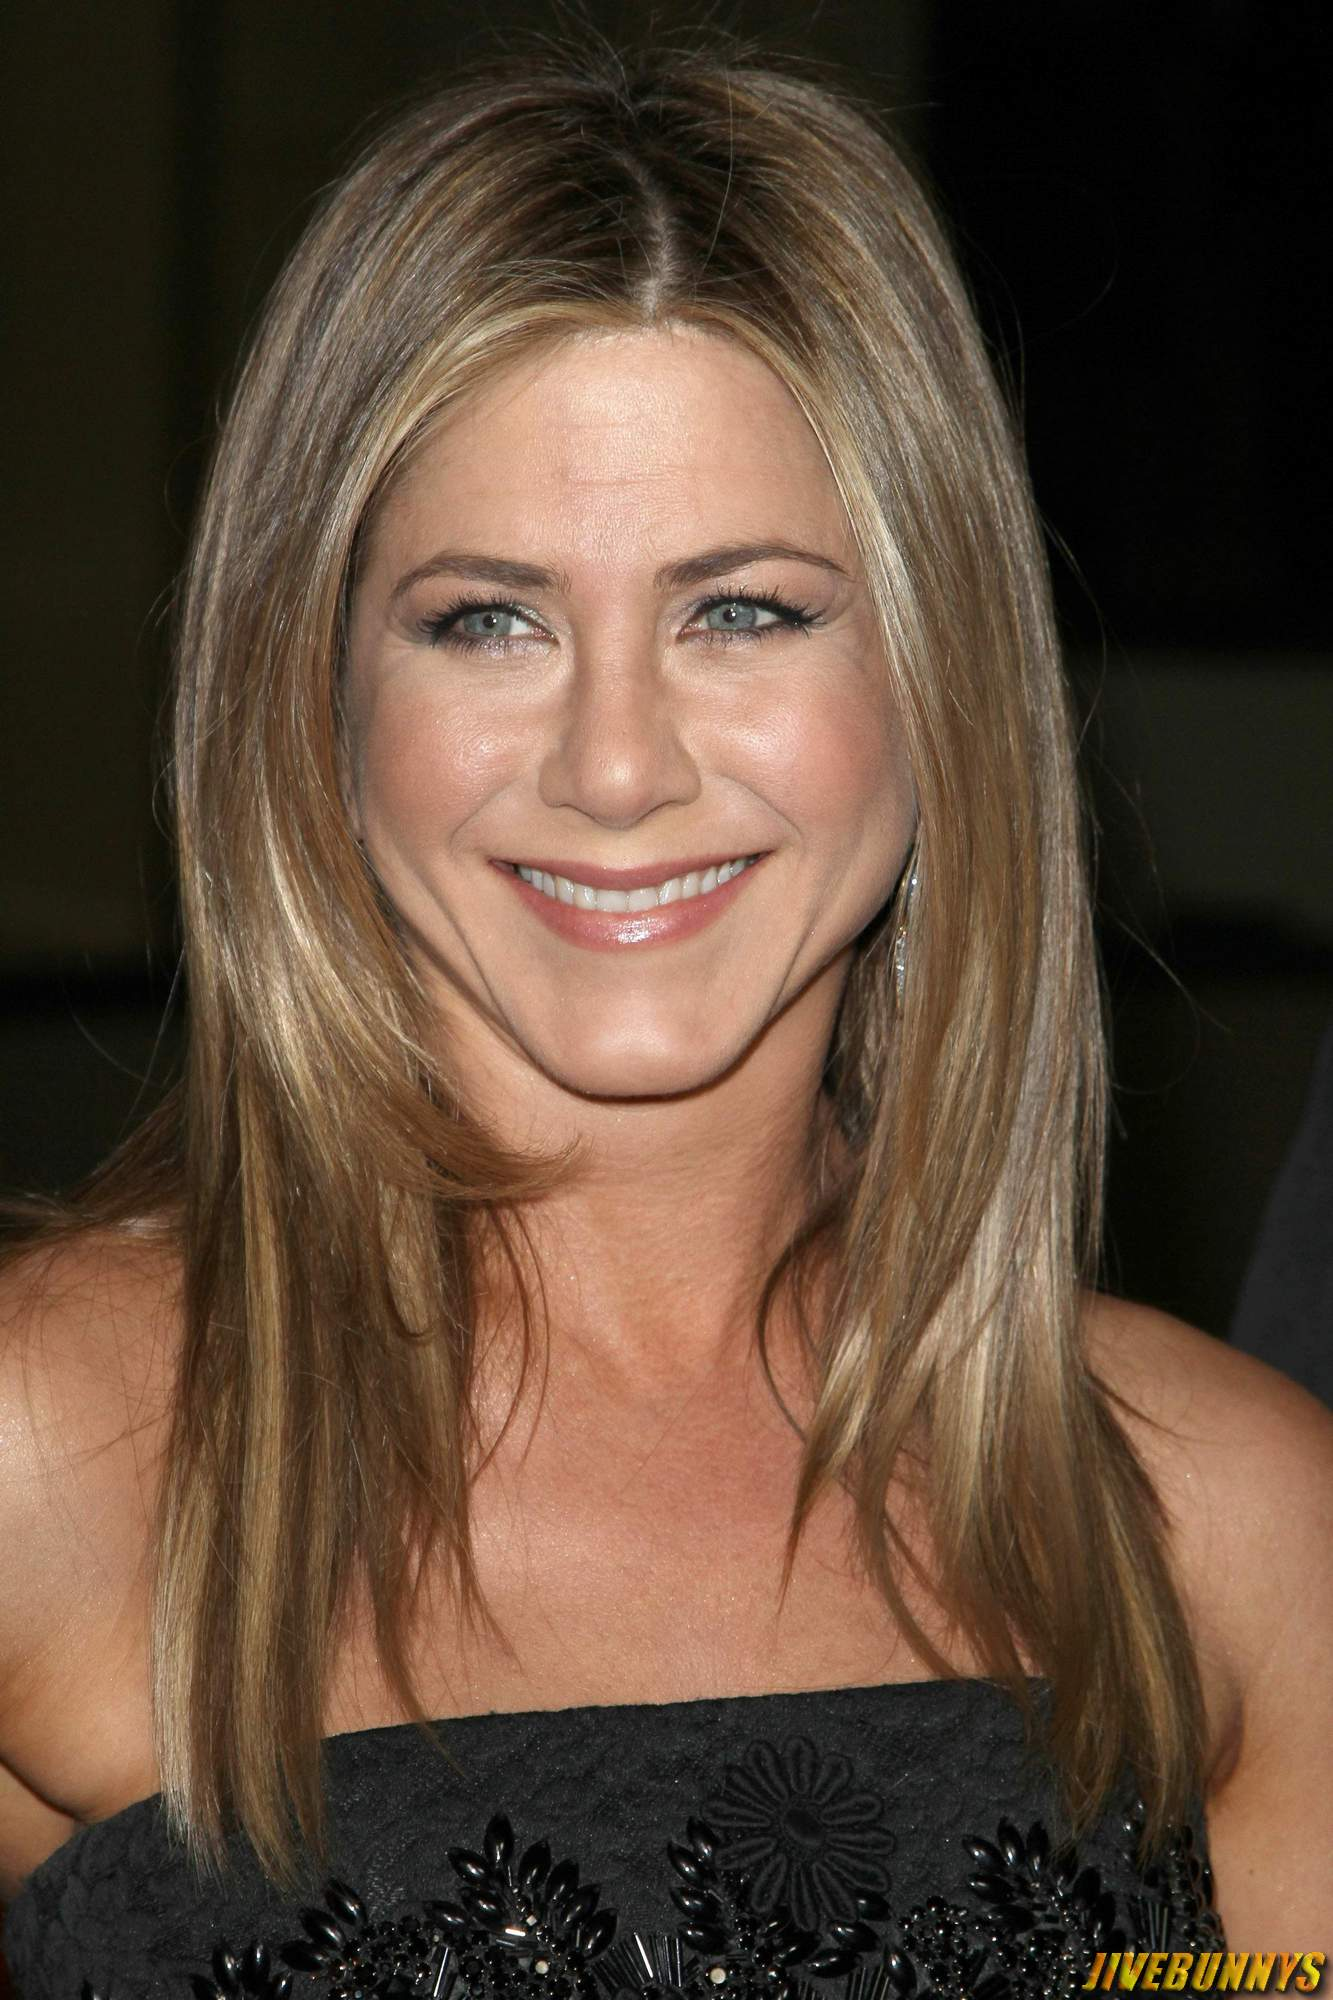 jennifer aniston special pictures 10 film actresses. Black Bedroom Furniture Sets. Home Design Ideas